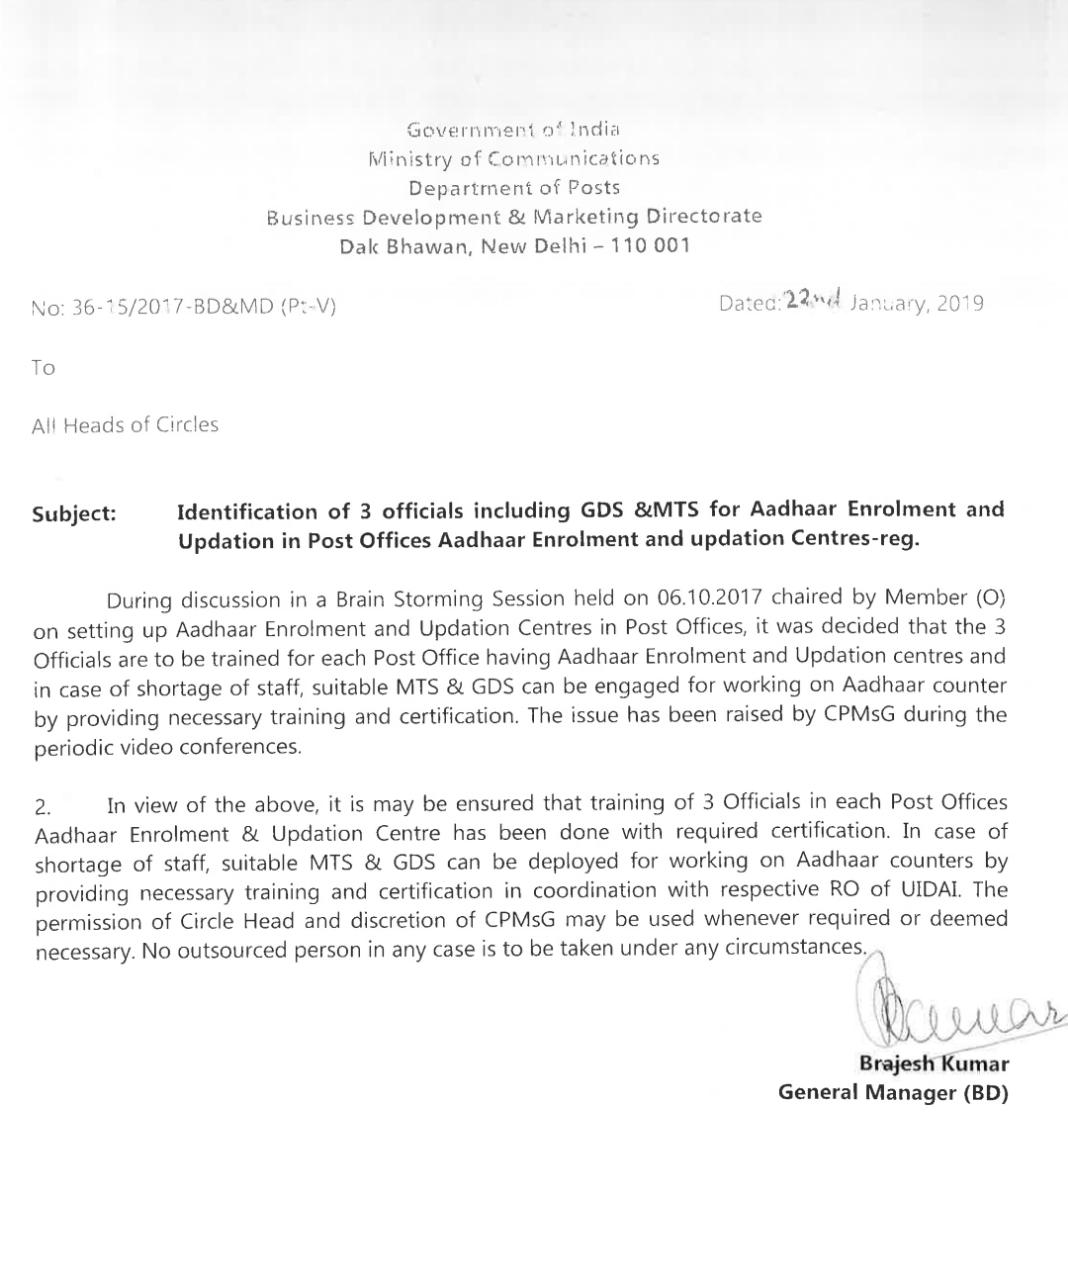 Suitable GDS & MTS Can be Deployed for Working on Aadhaar